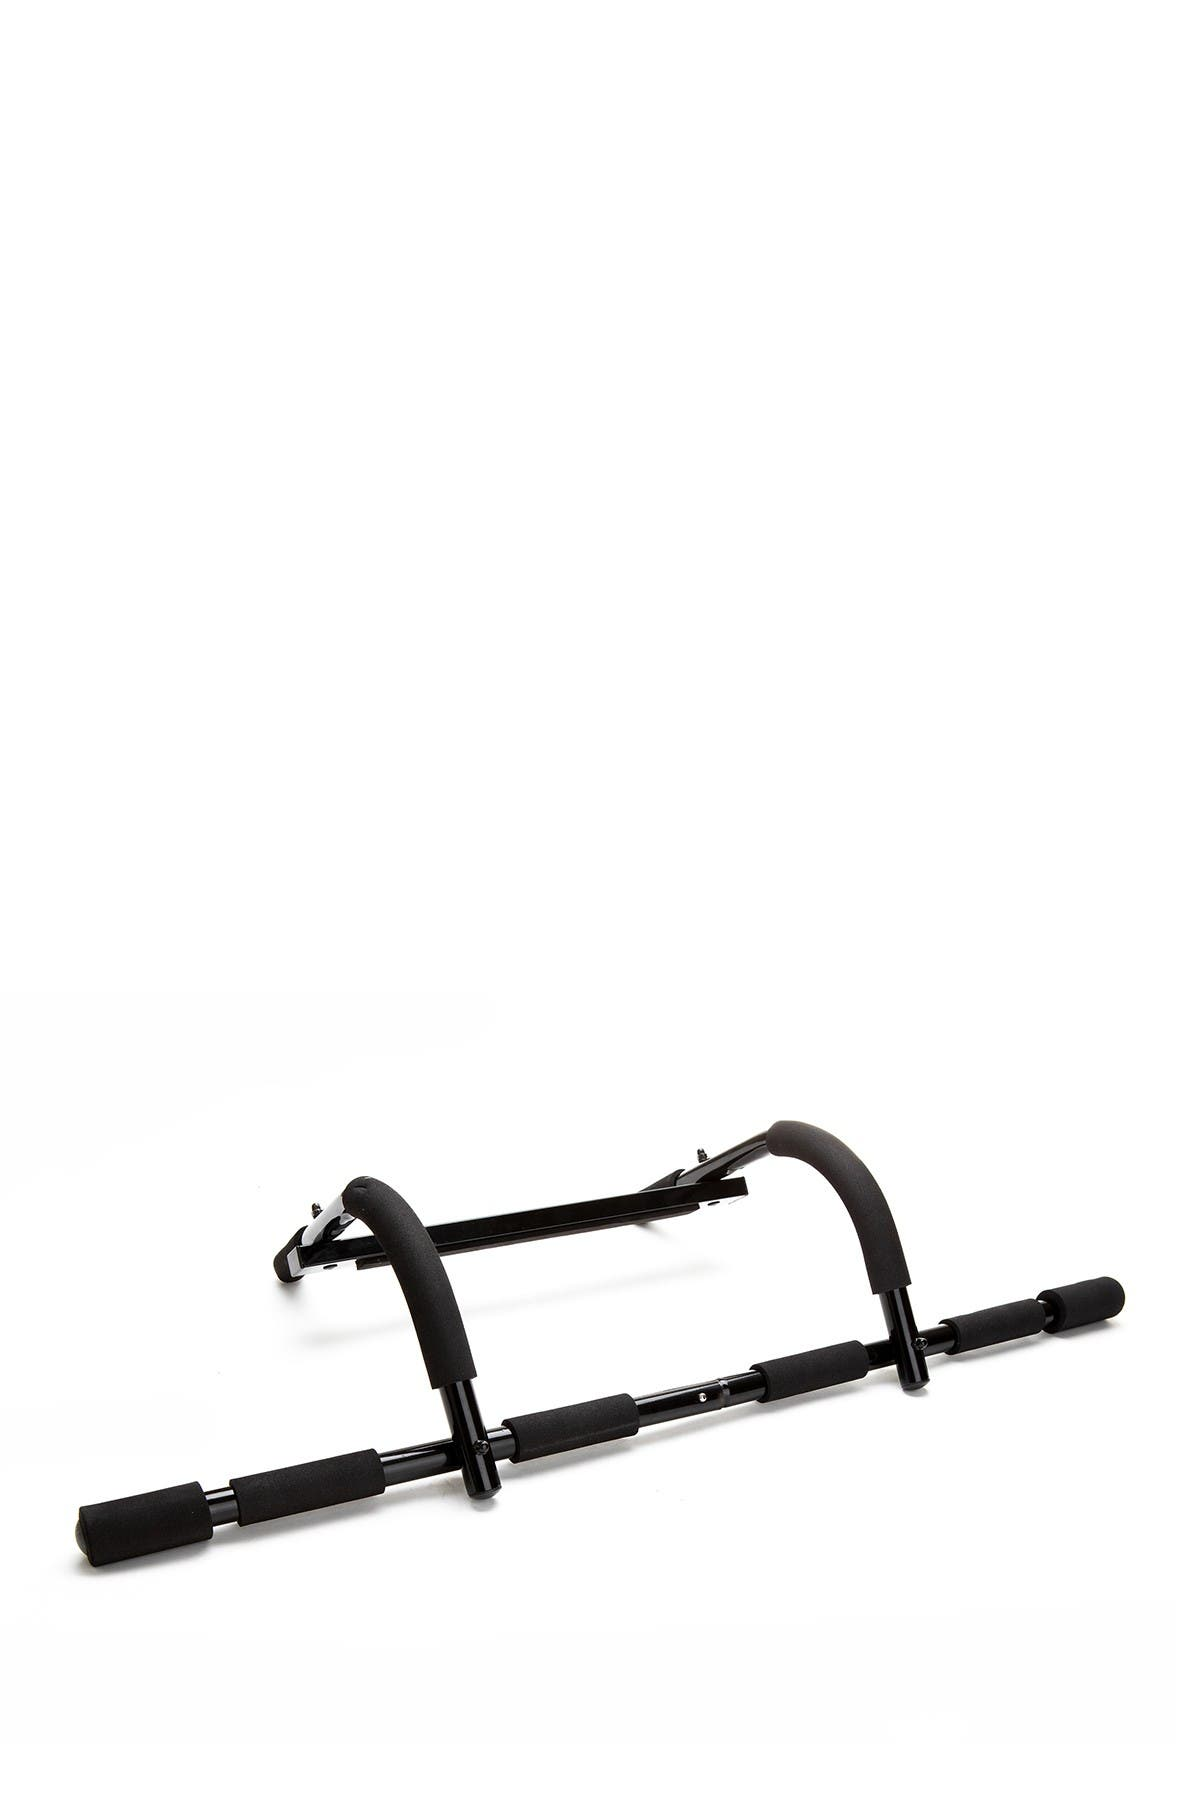 Image of MIND READER Multi-Grip Chin-Up/Pull-Up Full Body Doorway Trainer Bar